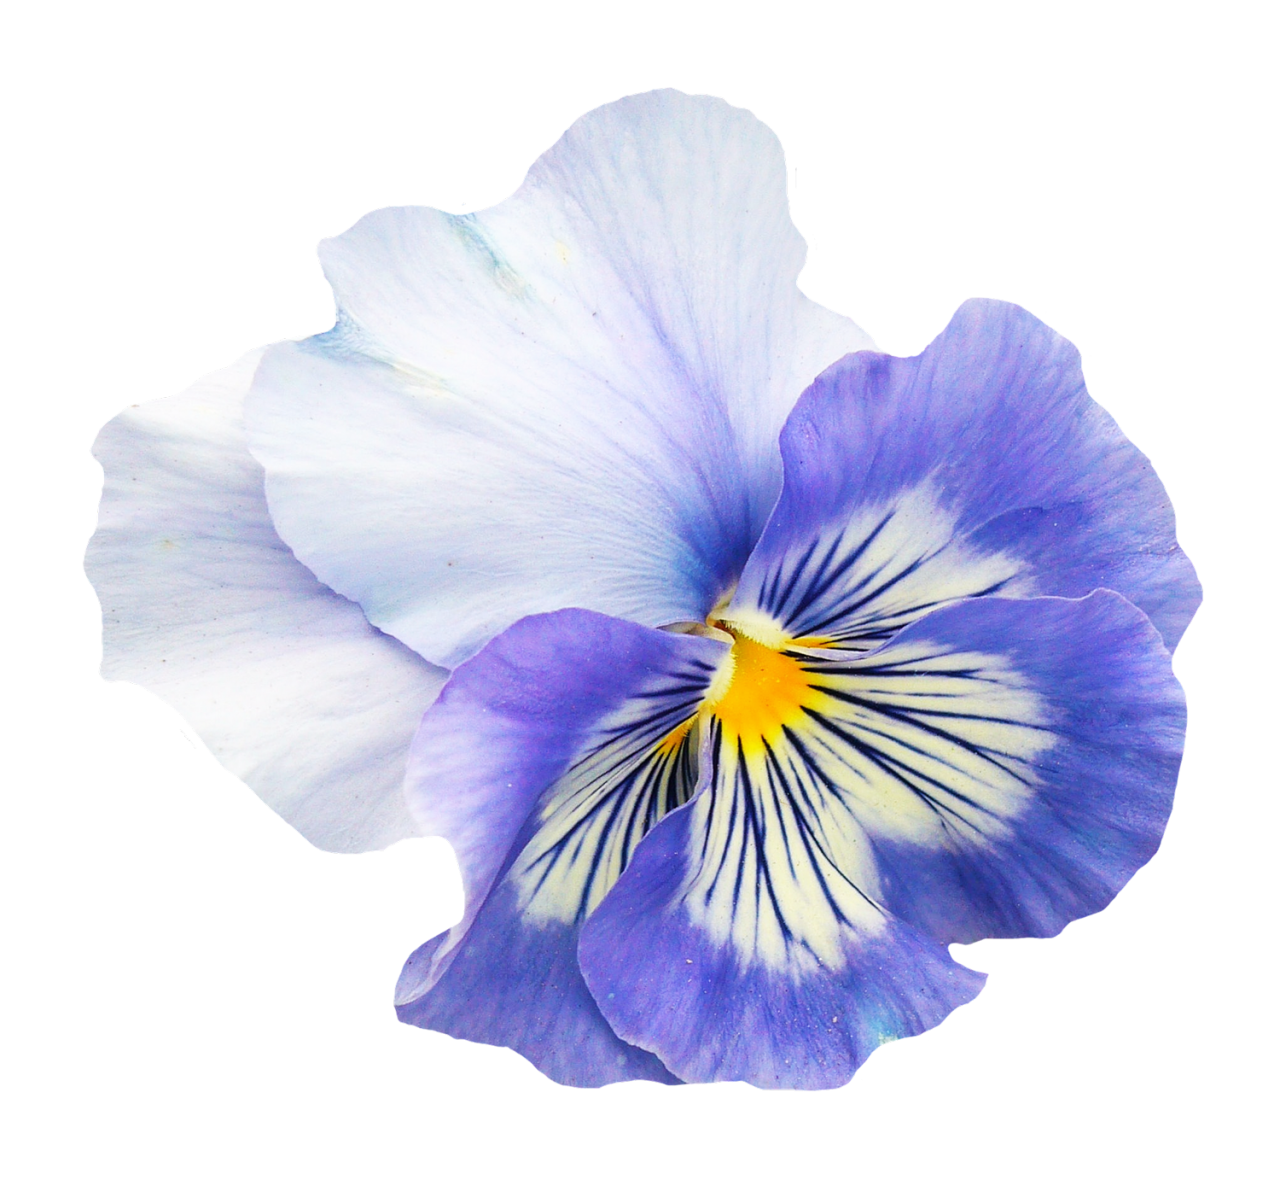 Pansy Flower PNG Image